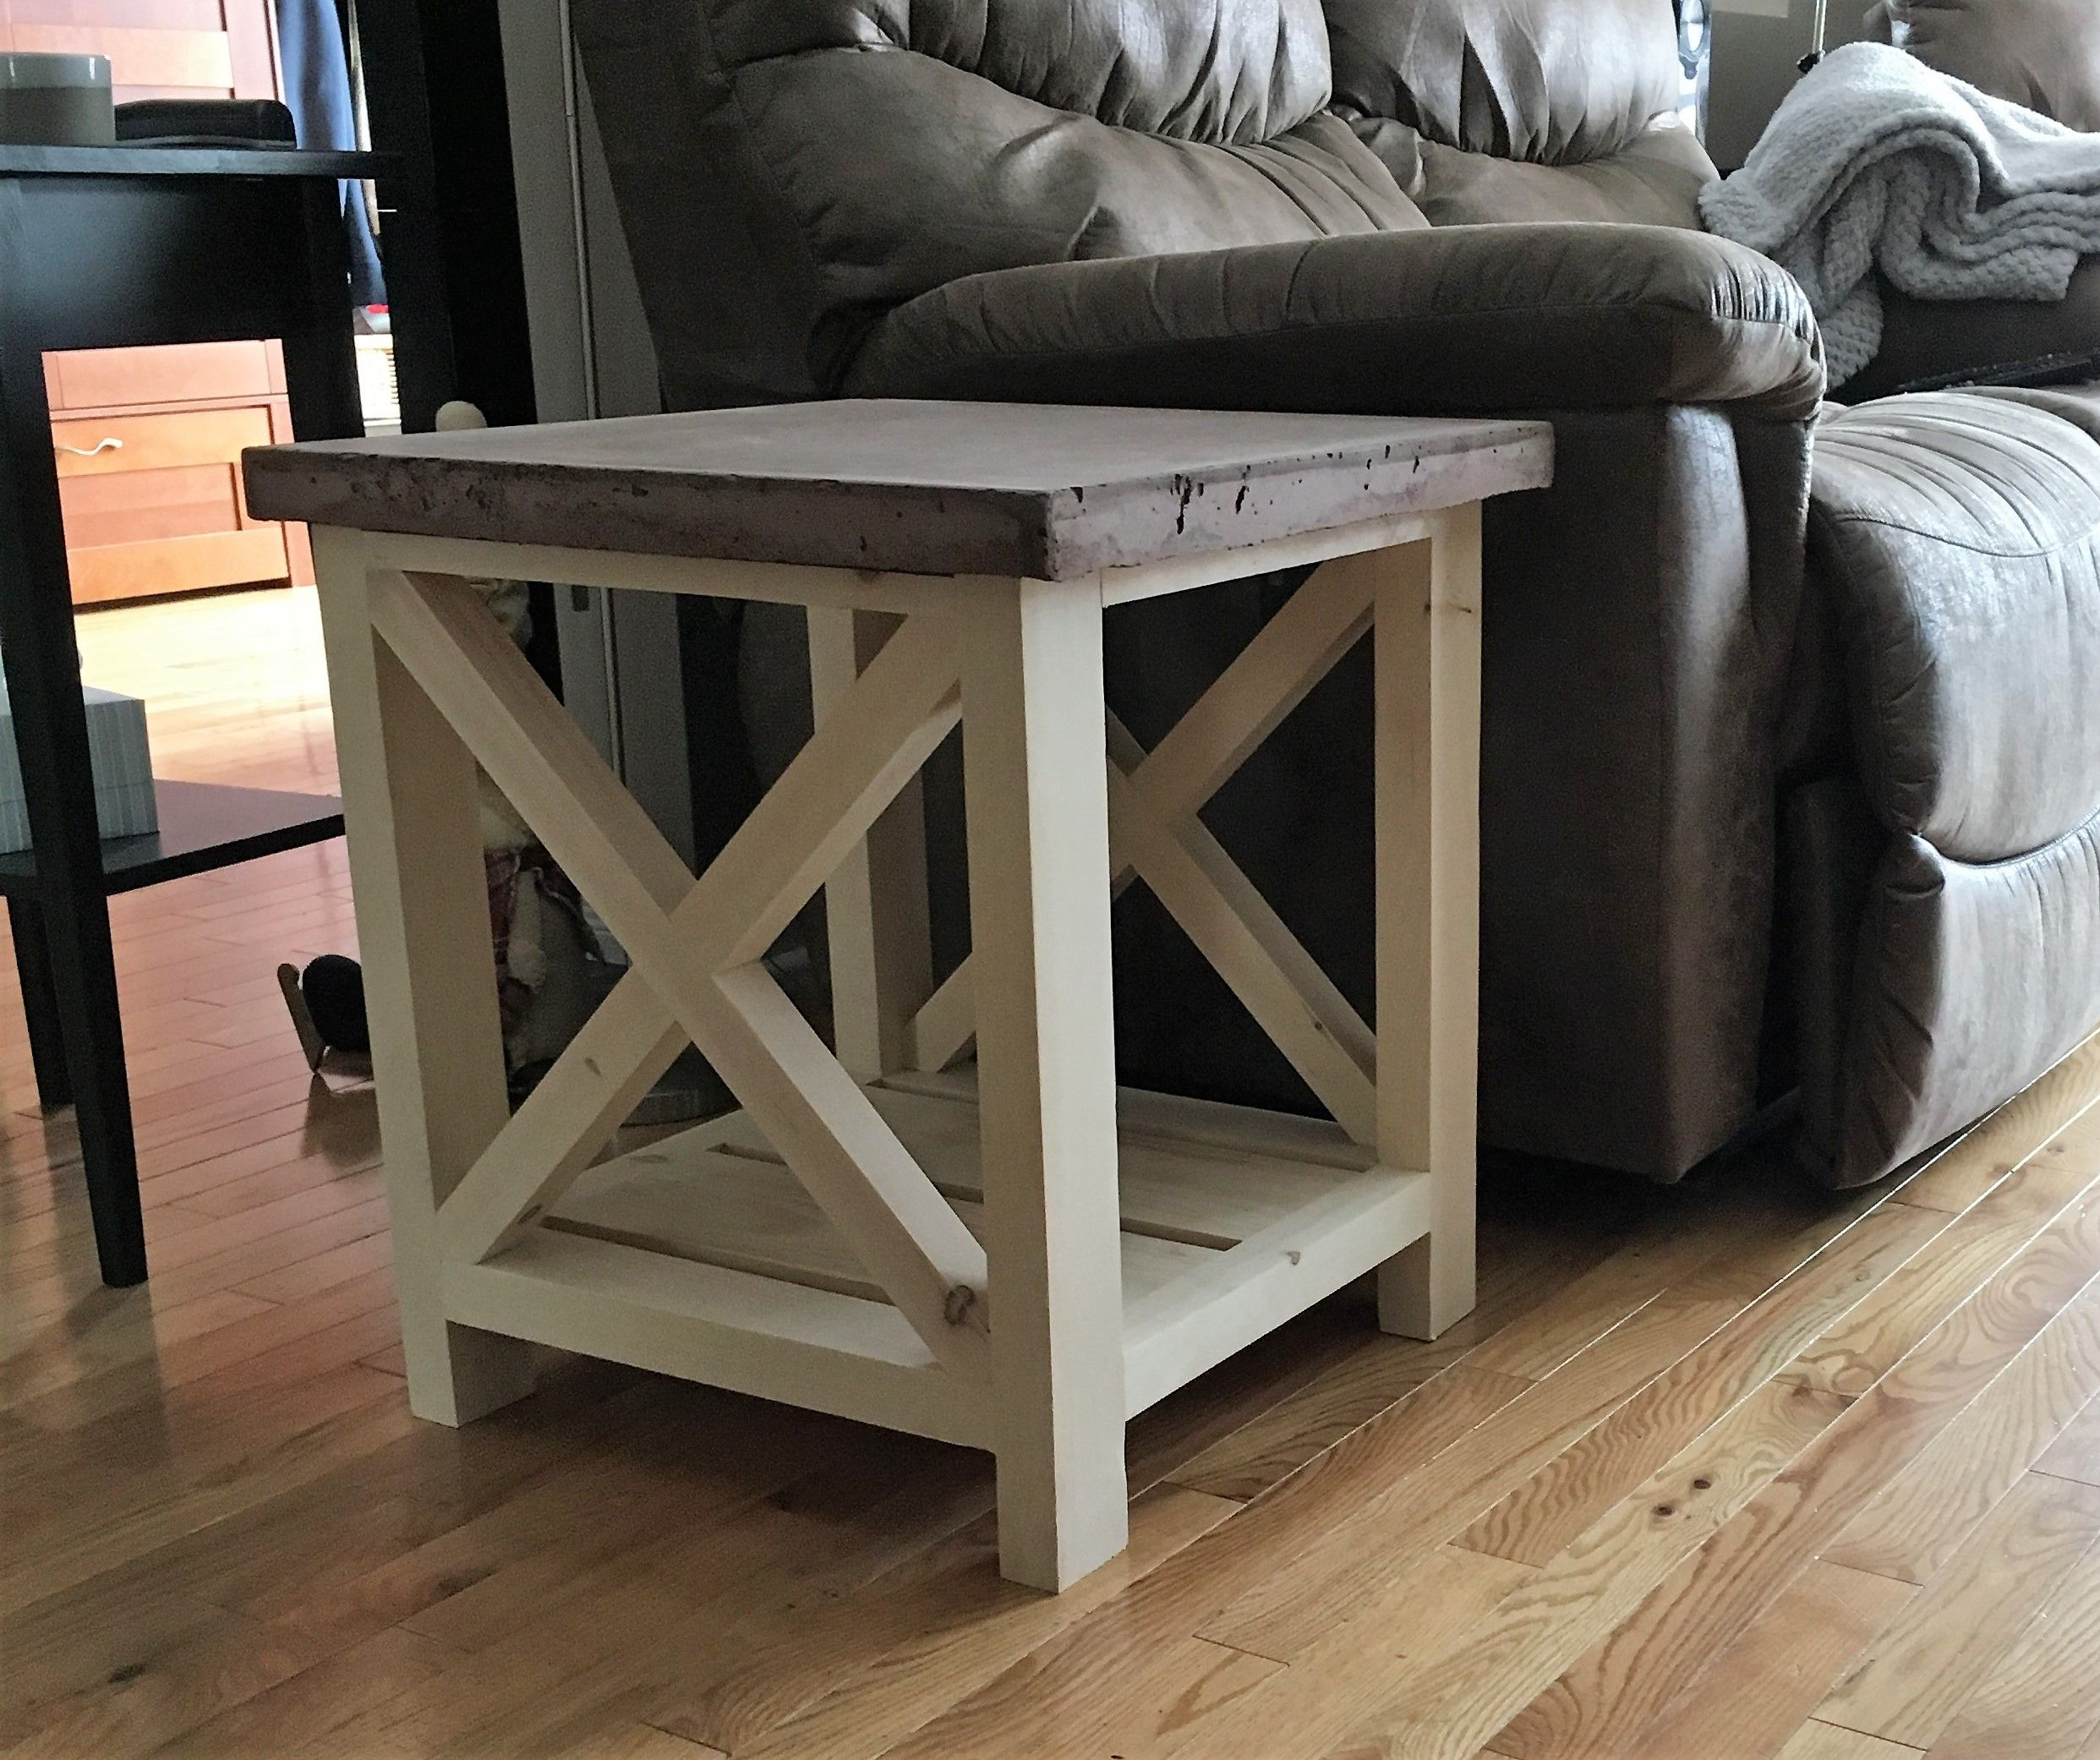 Ana White Concrete Top End Table Diy Projects Homemade